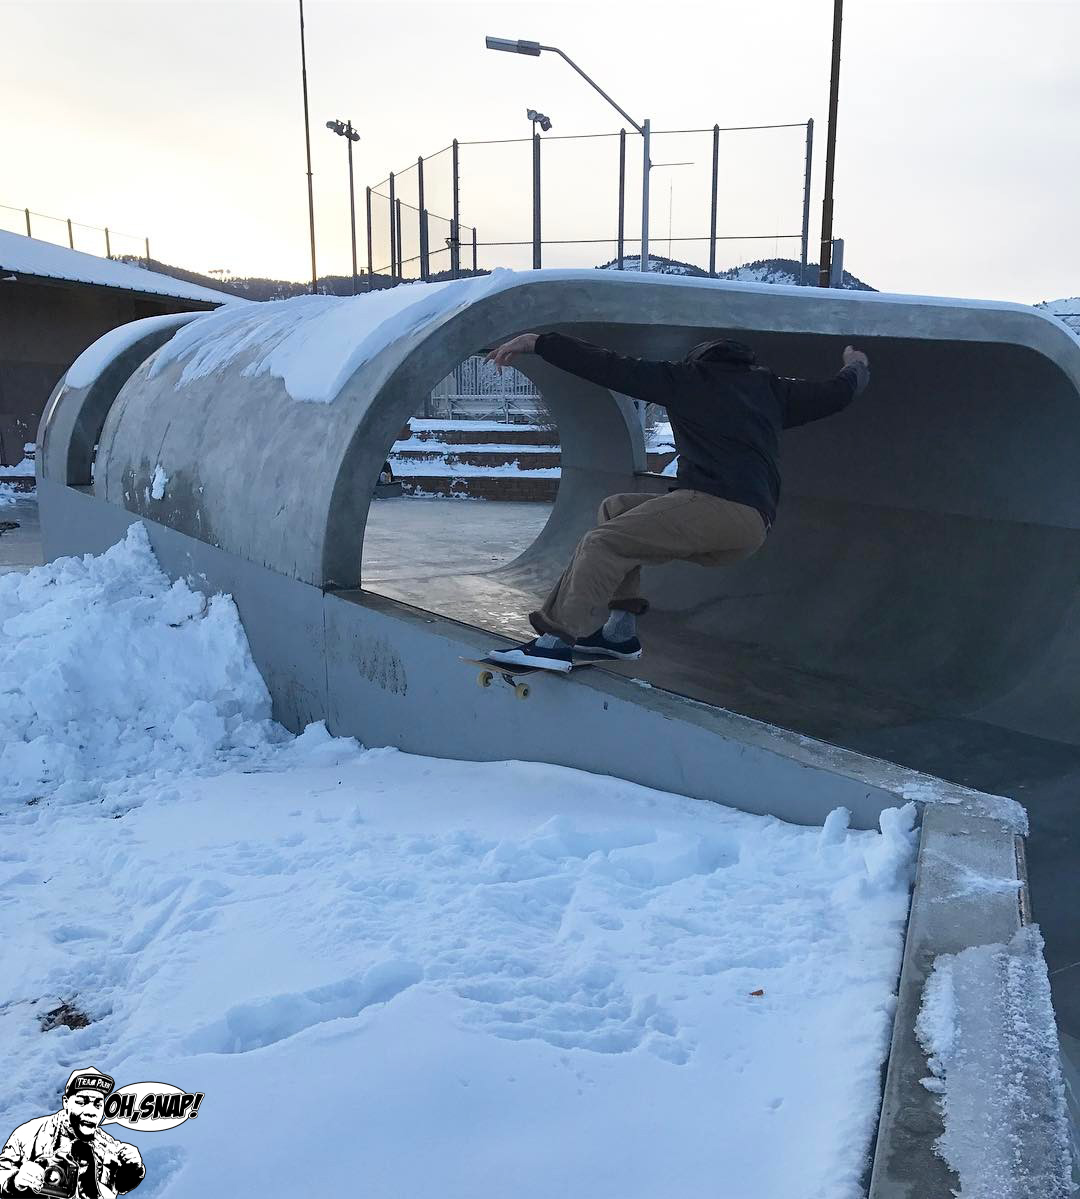 OH SNAP!! Here's @crocktubbs with a slippery board slide in the snowy Big O Replica in Golden, Co! Make sure to follow us on Instagram for more videos/pictures of our one of a kind skate parks. @teampainskateparks